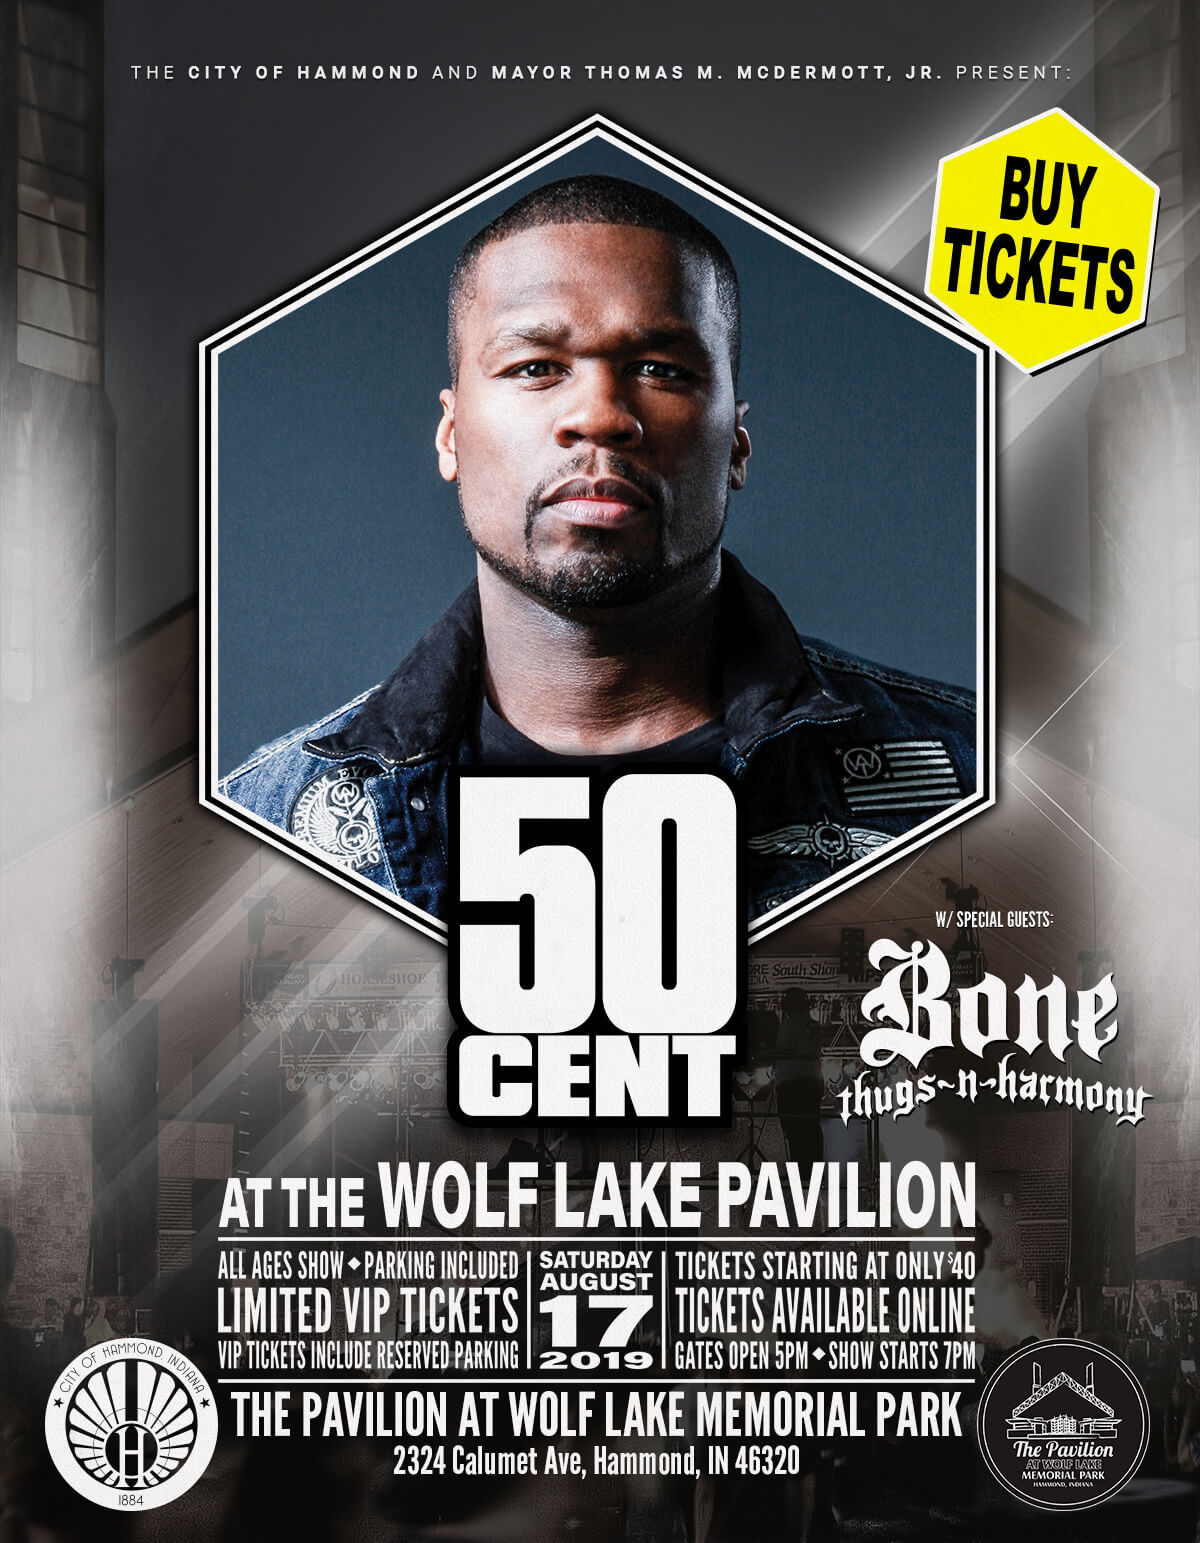 Get 50 CENT Tickets Now!